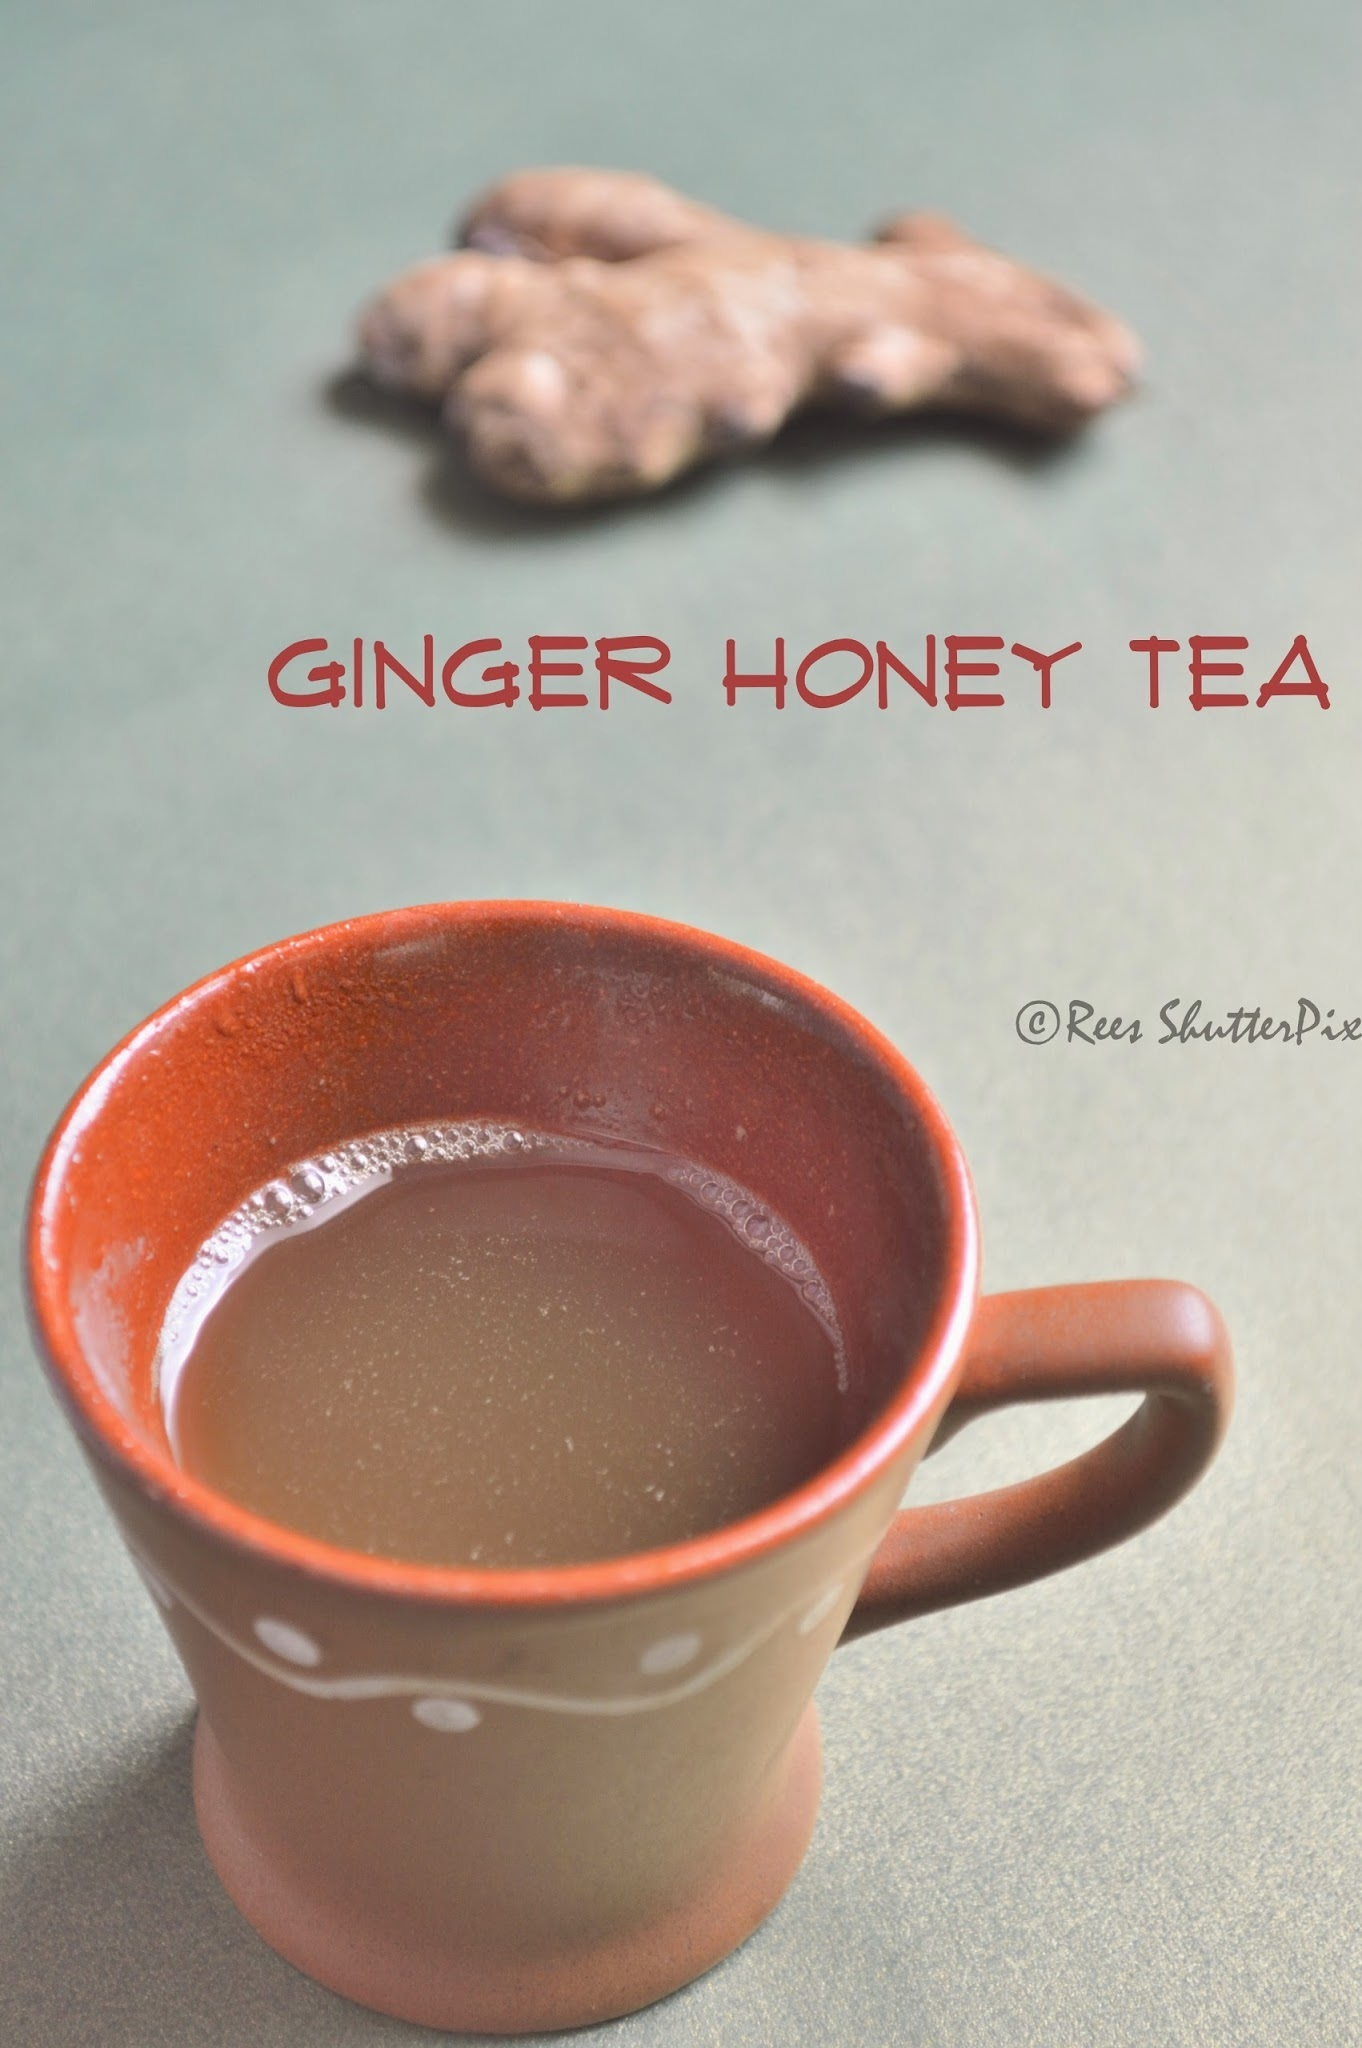 Ginger Honey Drink | Home Remedy for Cold and Cough